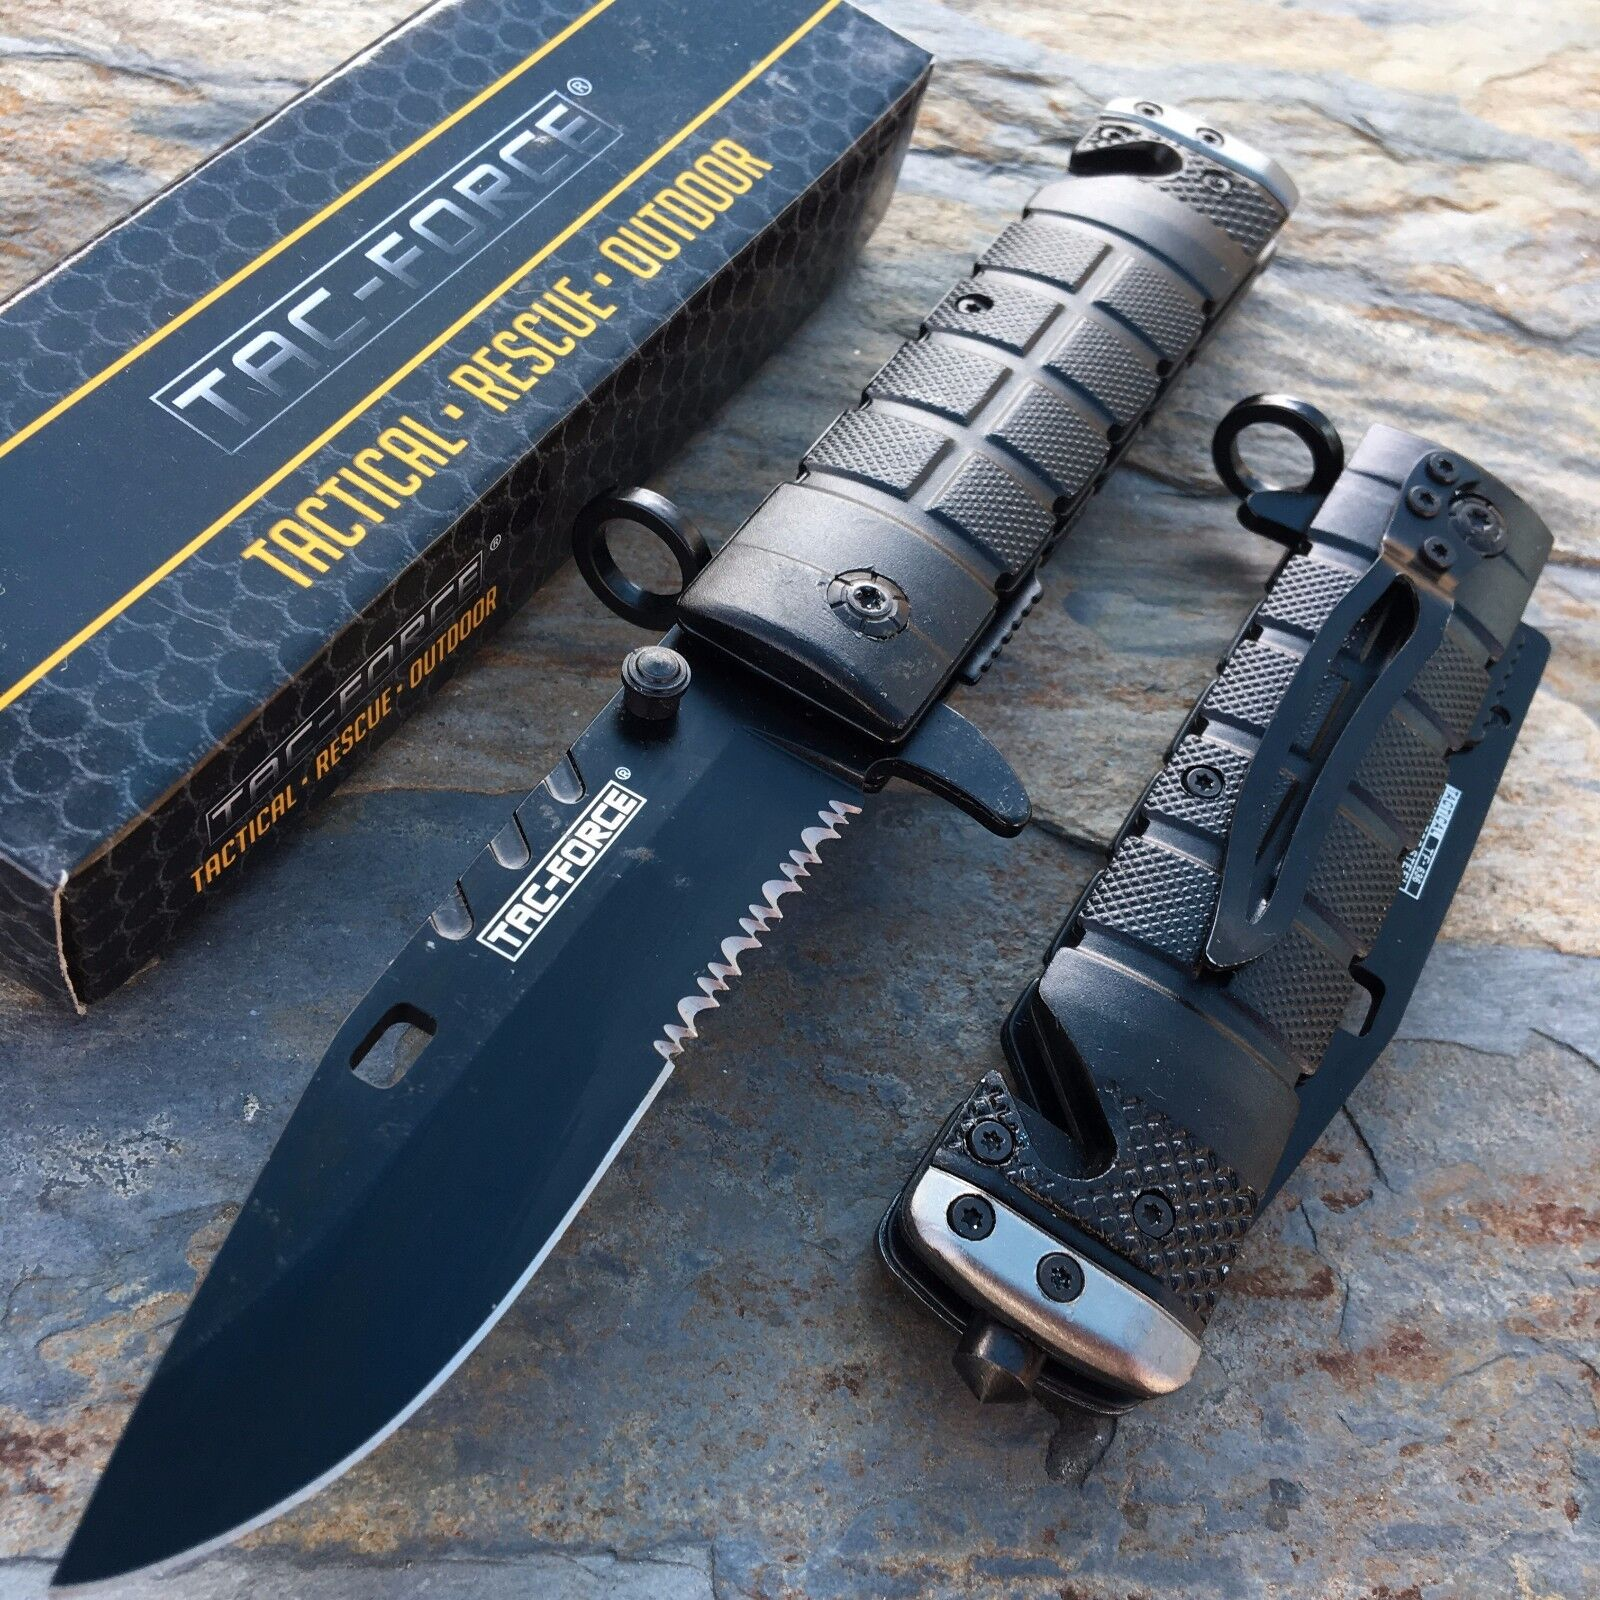 TAC FORCE Spring Assisted Open Knife Tactical Rescue